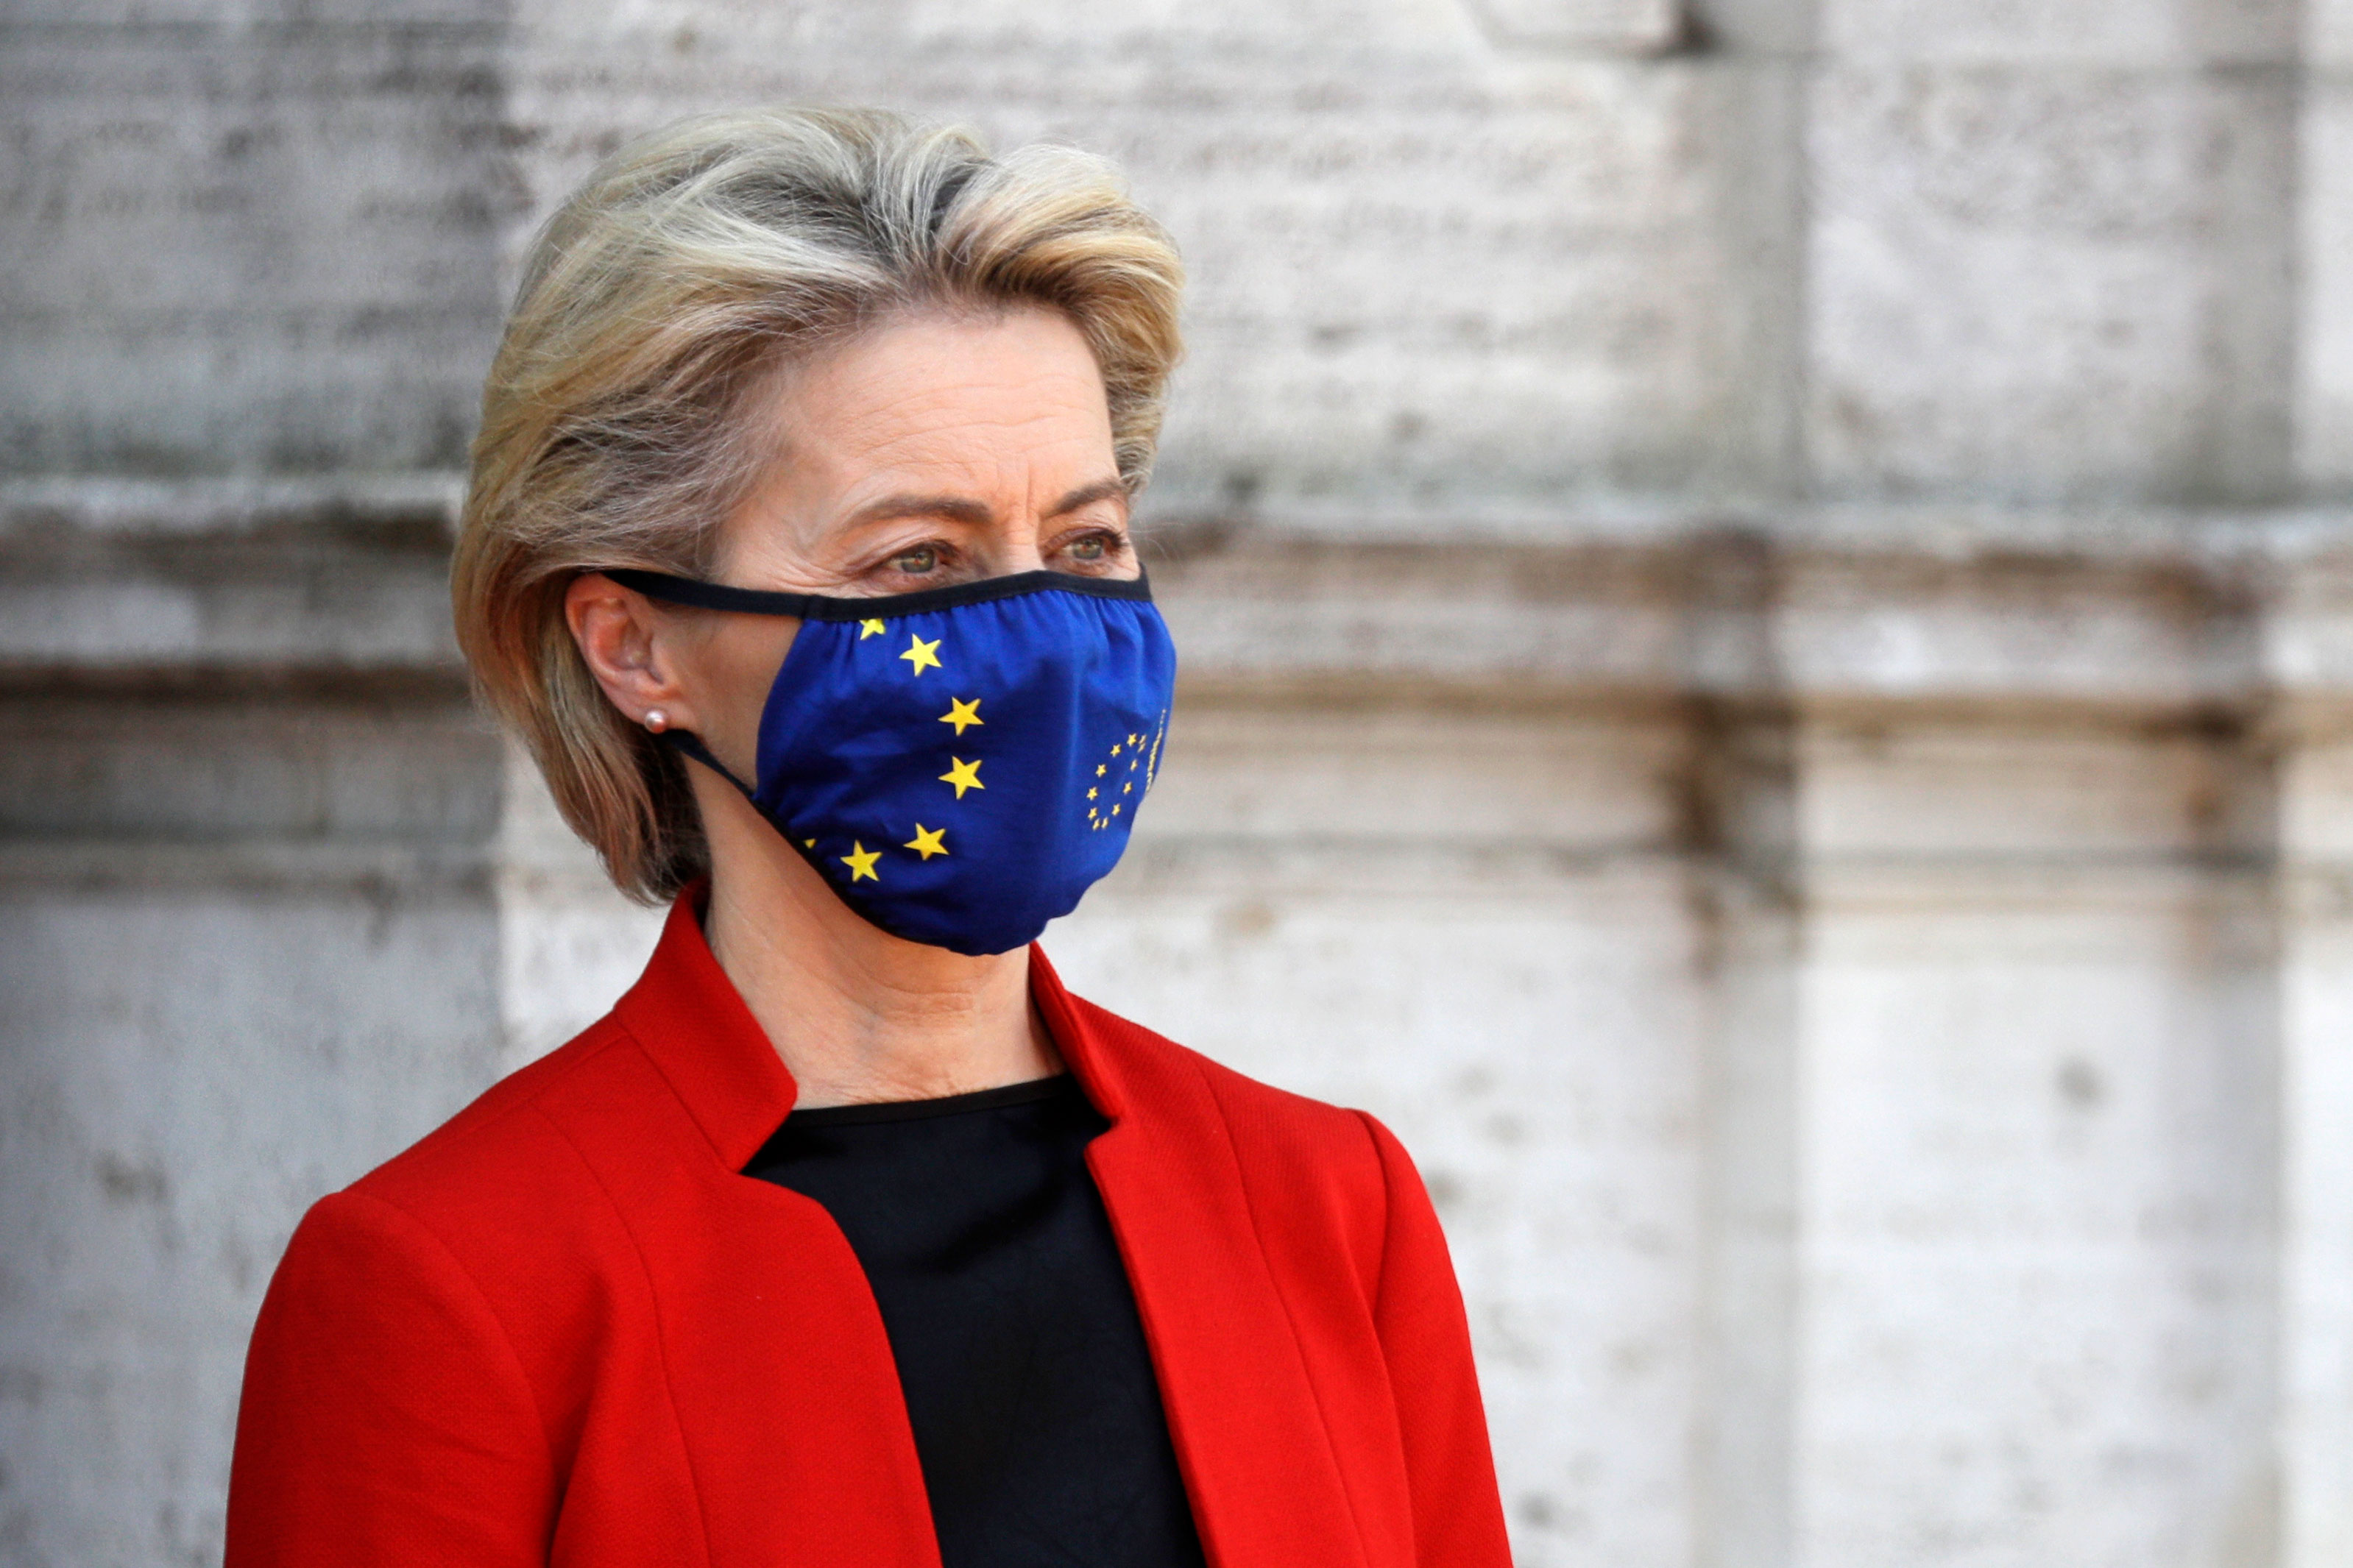 European Union Commission President Ursula von der Leyen stands after reviewing the honor guard during the Global Health Summit in Rome on May 21.